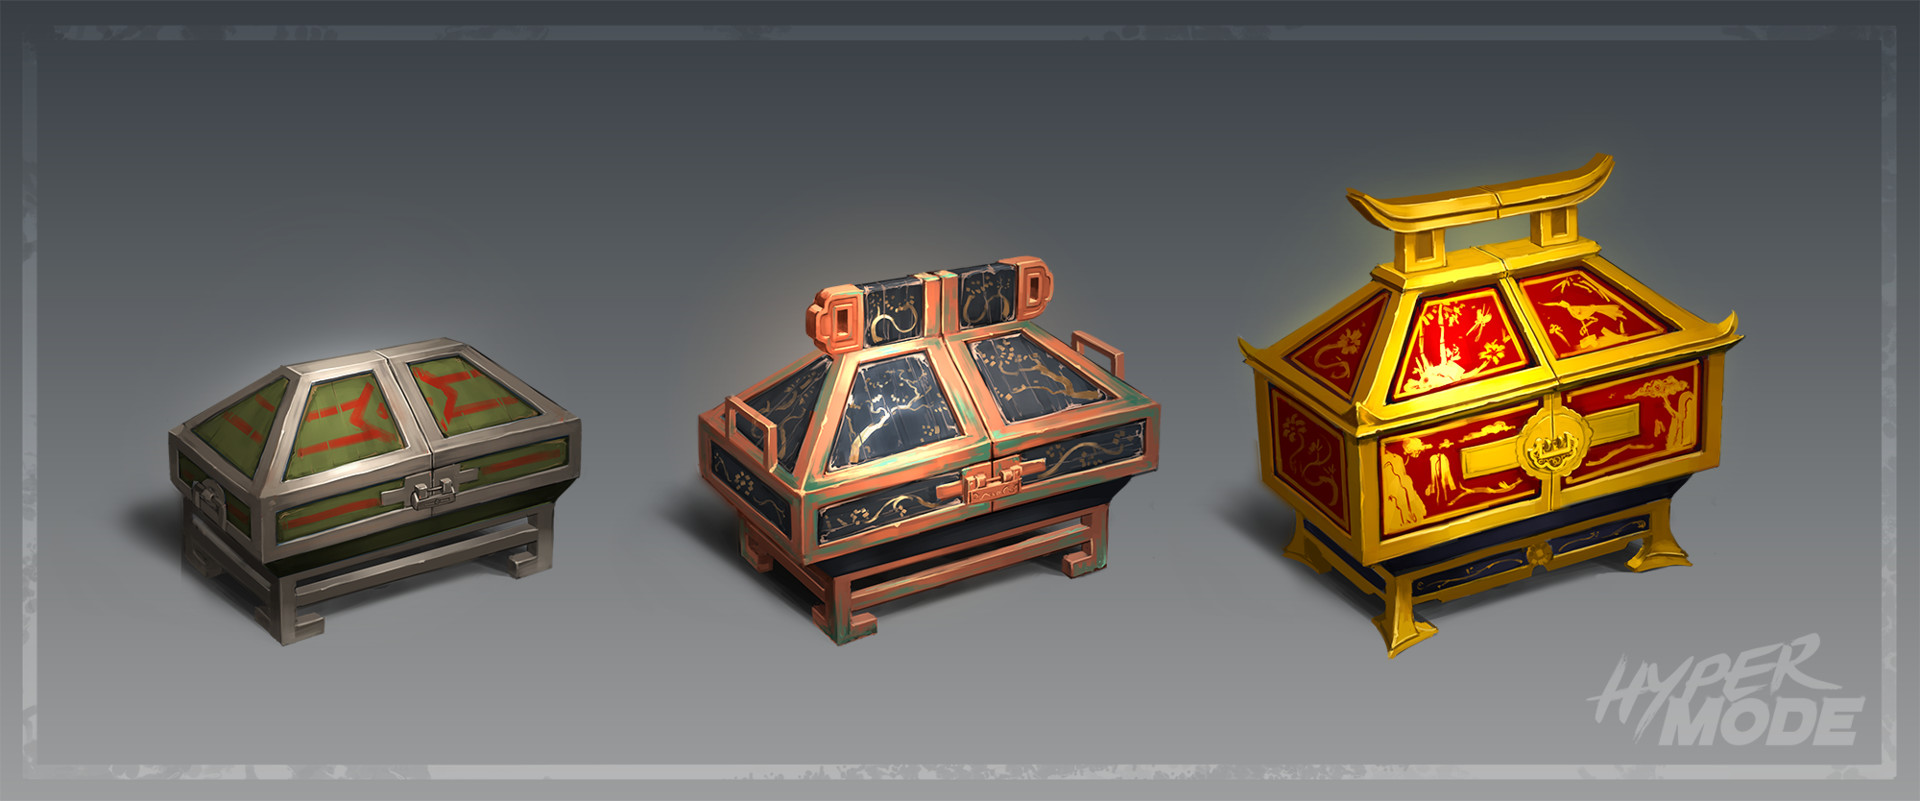 dave-lopez-concepts-20170215-asianchests